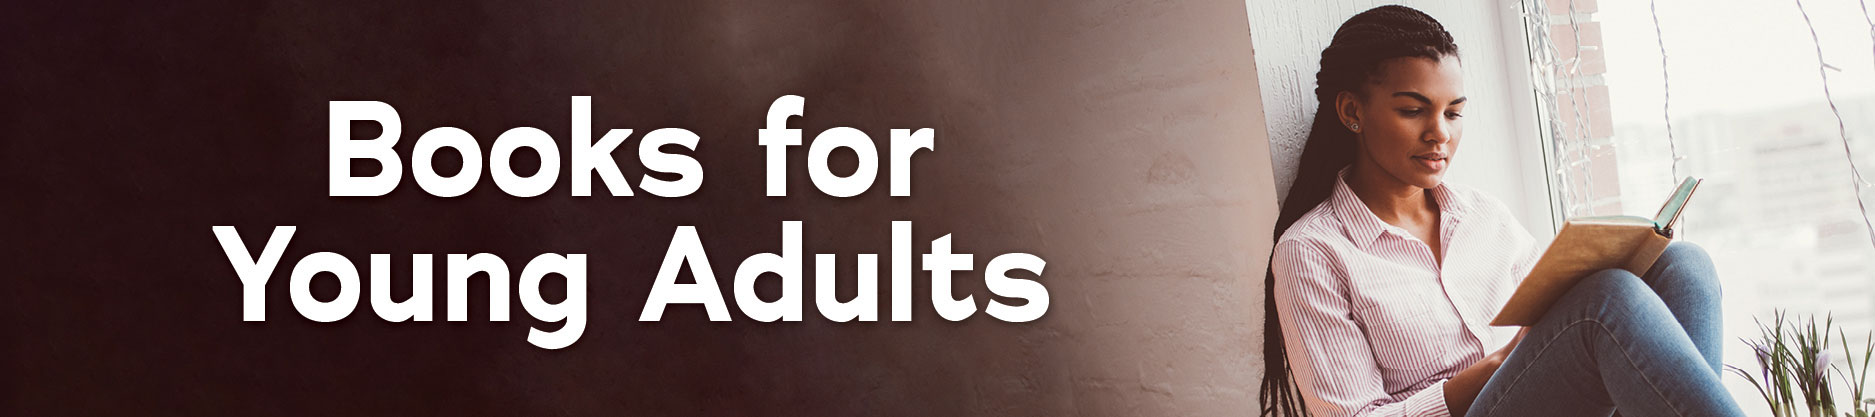 Books for Young Adults (age 13-18)